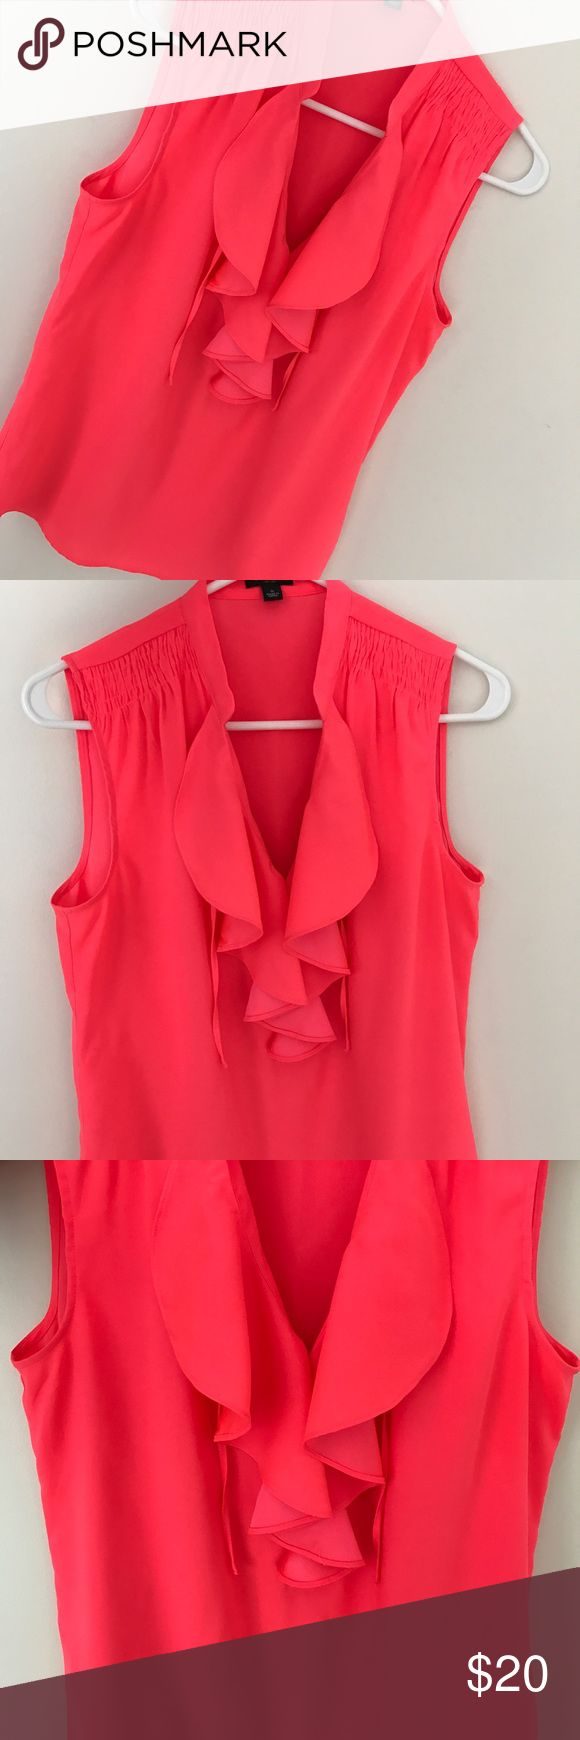 Ann Taylor neon top This is a great summer top in a neon pink/peach color. The true color is very difficult to capture in a picture(I did my best while photographing it). Top has beautiful ruffles and looks amazing paired with white pants in the summer! It is in perfect condition with zero flaws. Size S Ann Taylor Tops Blouses